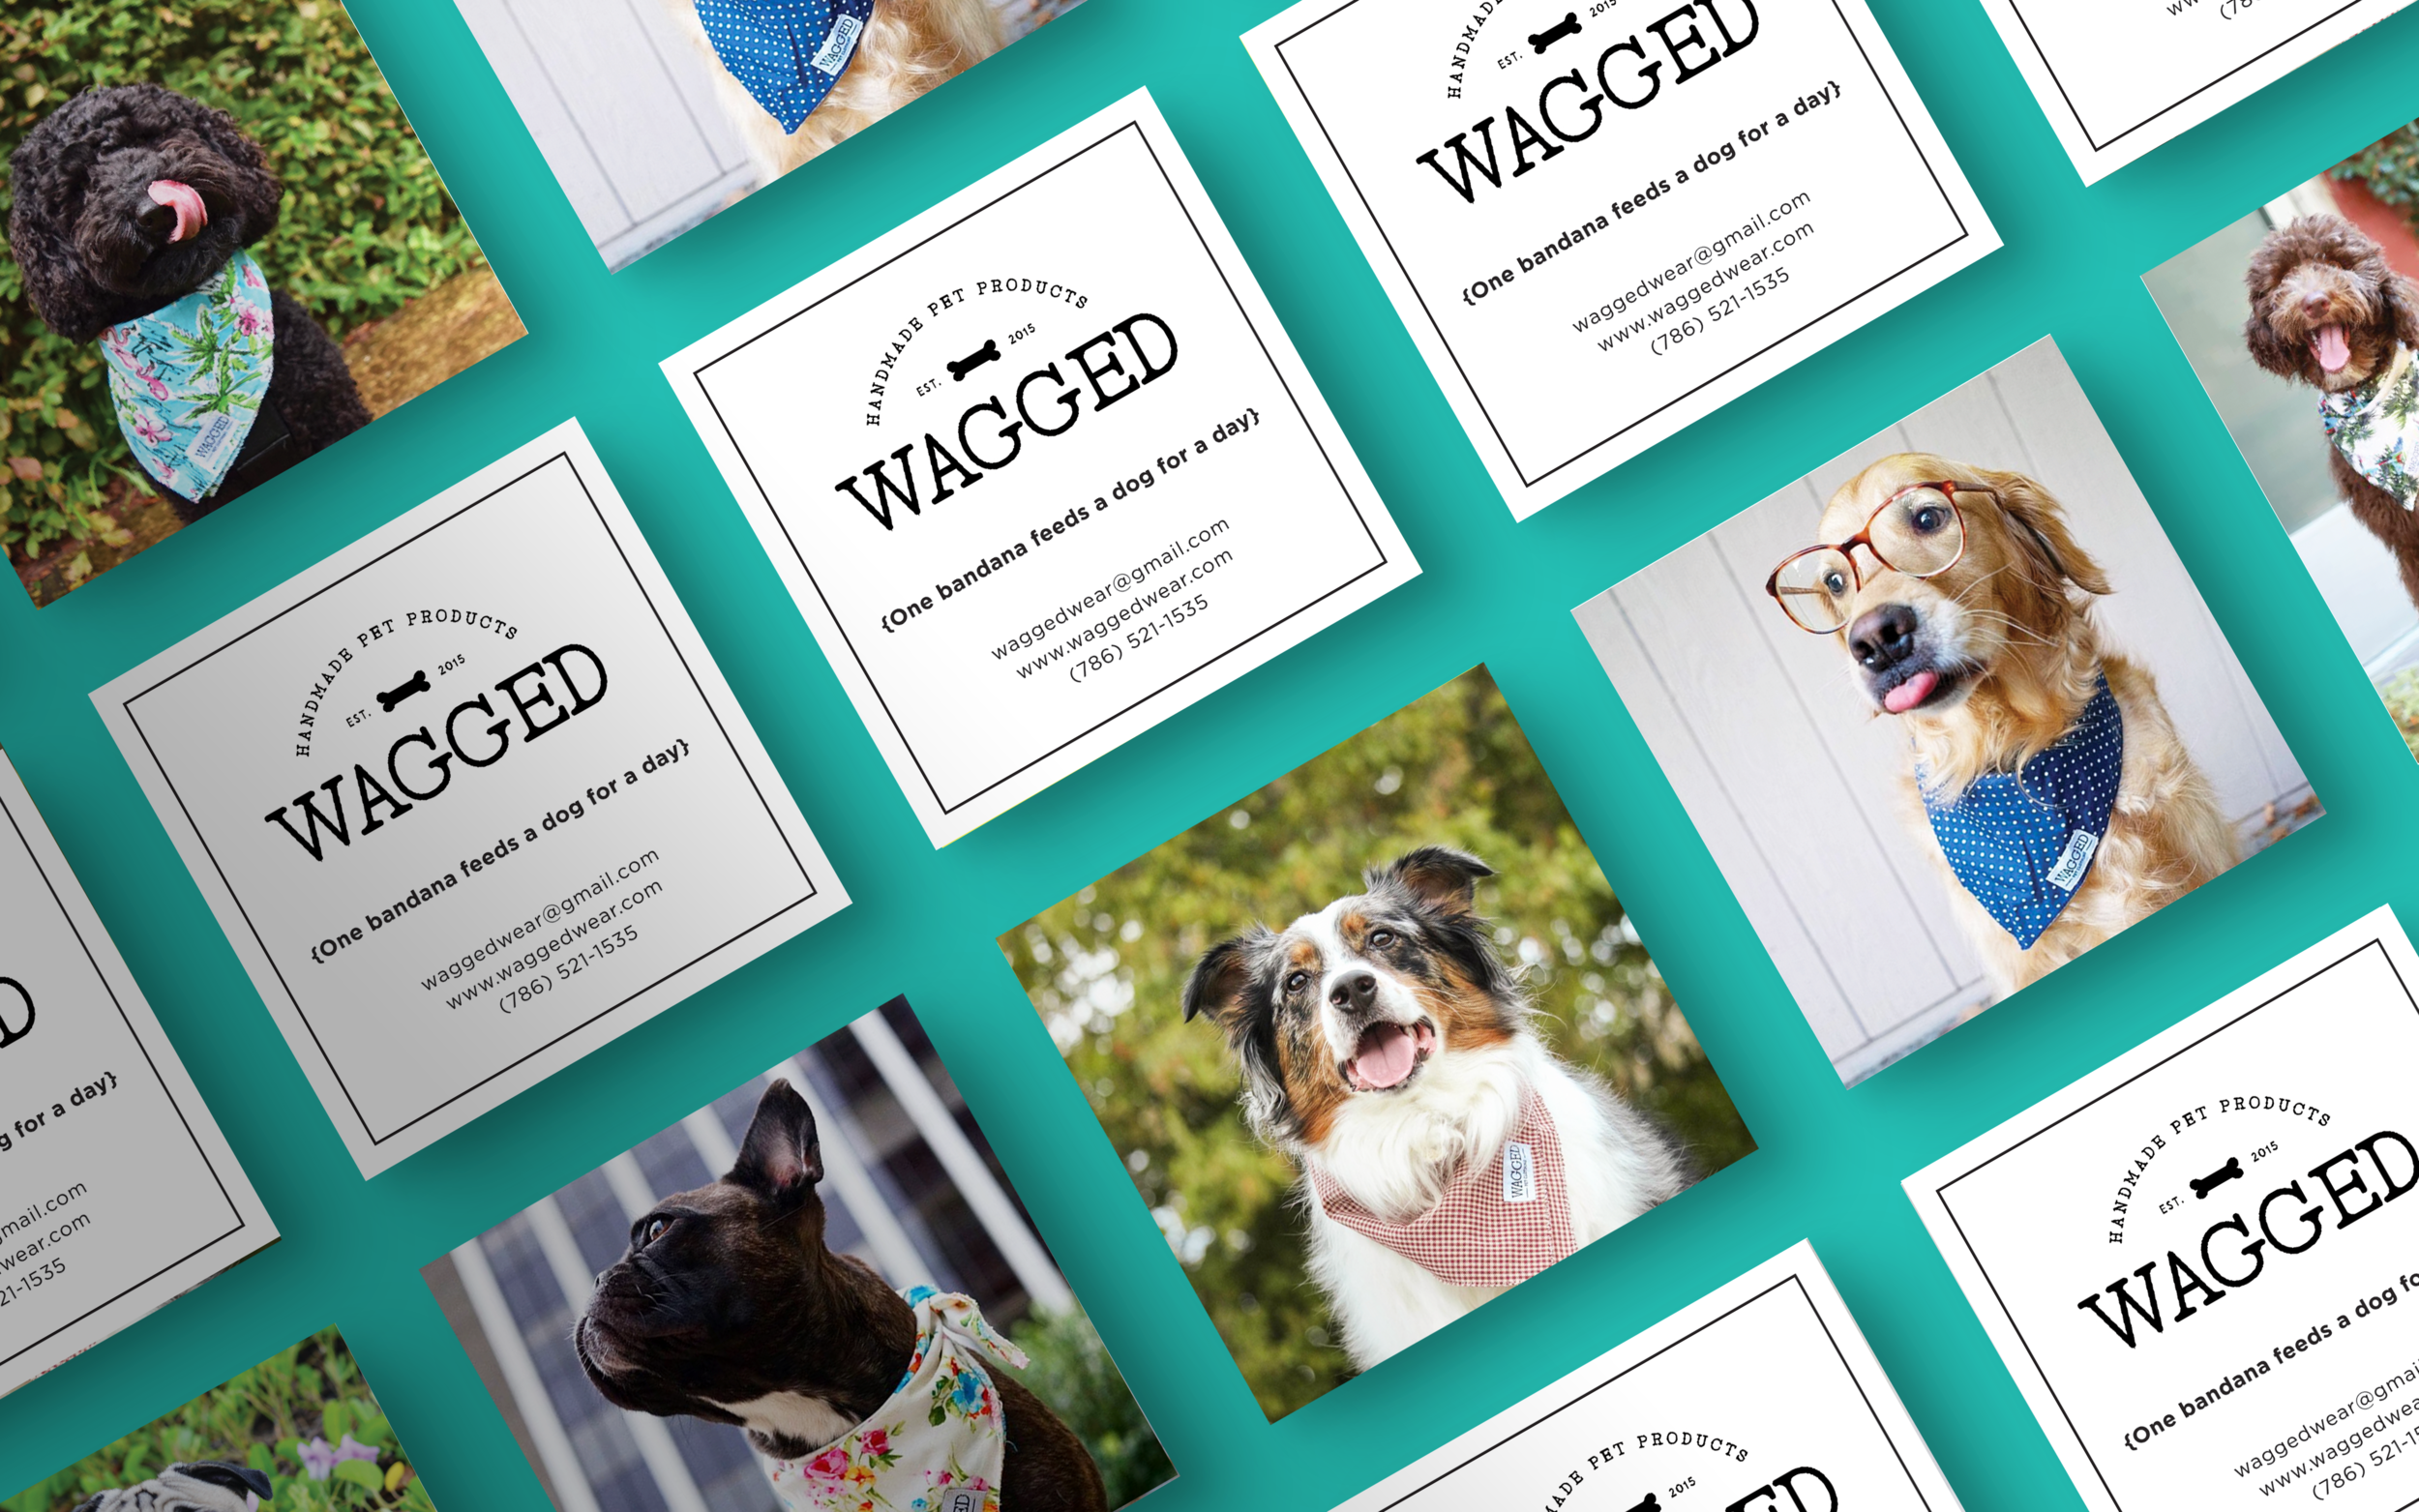 Wagged_BusinessCards.png